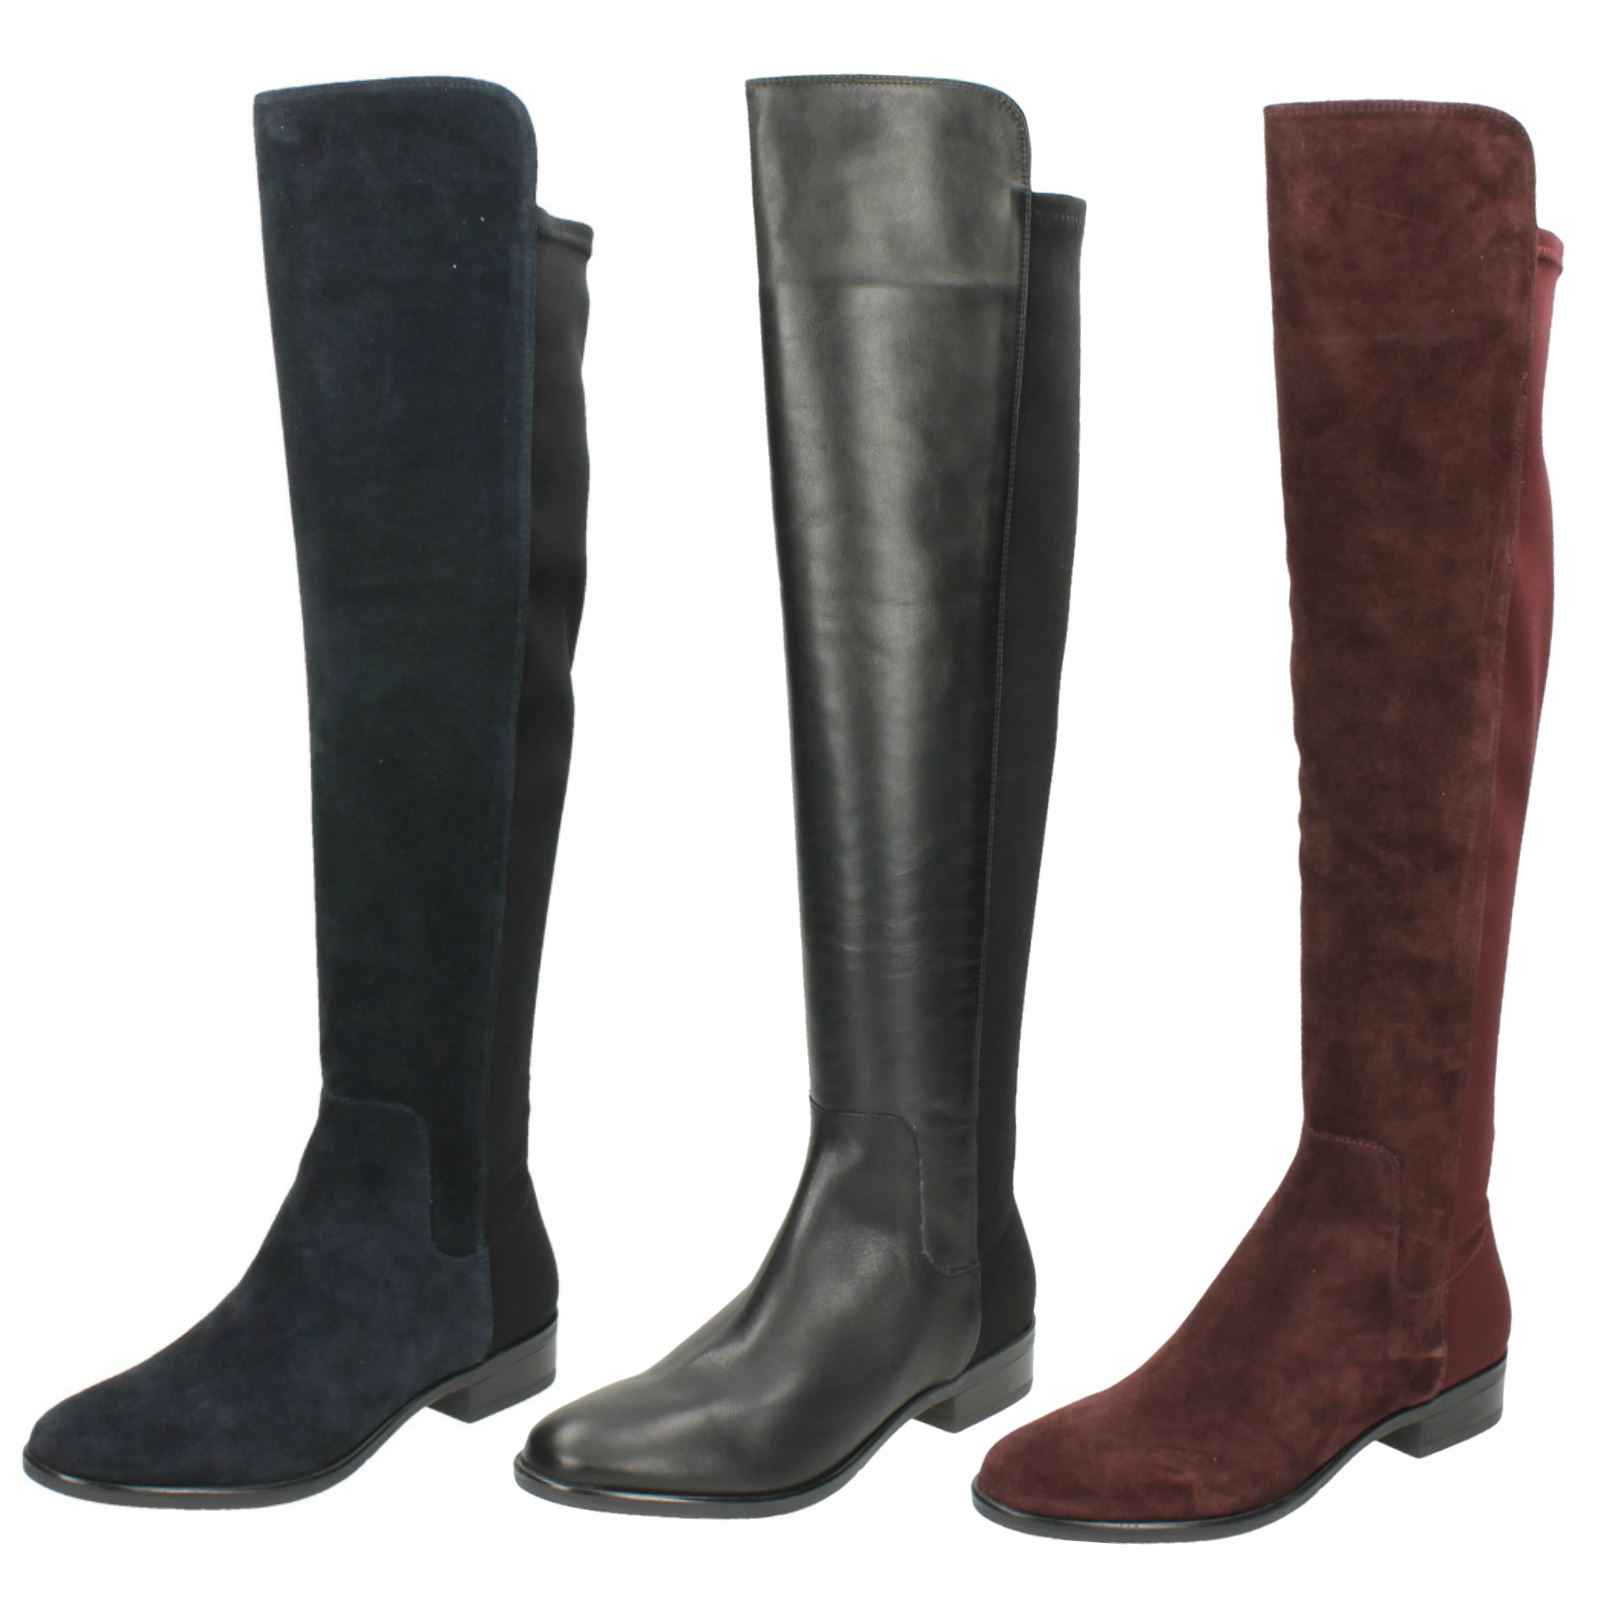 3a87c8066f2 Details about Ladies Clarks Knee High Boots